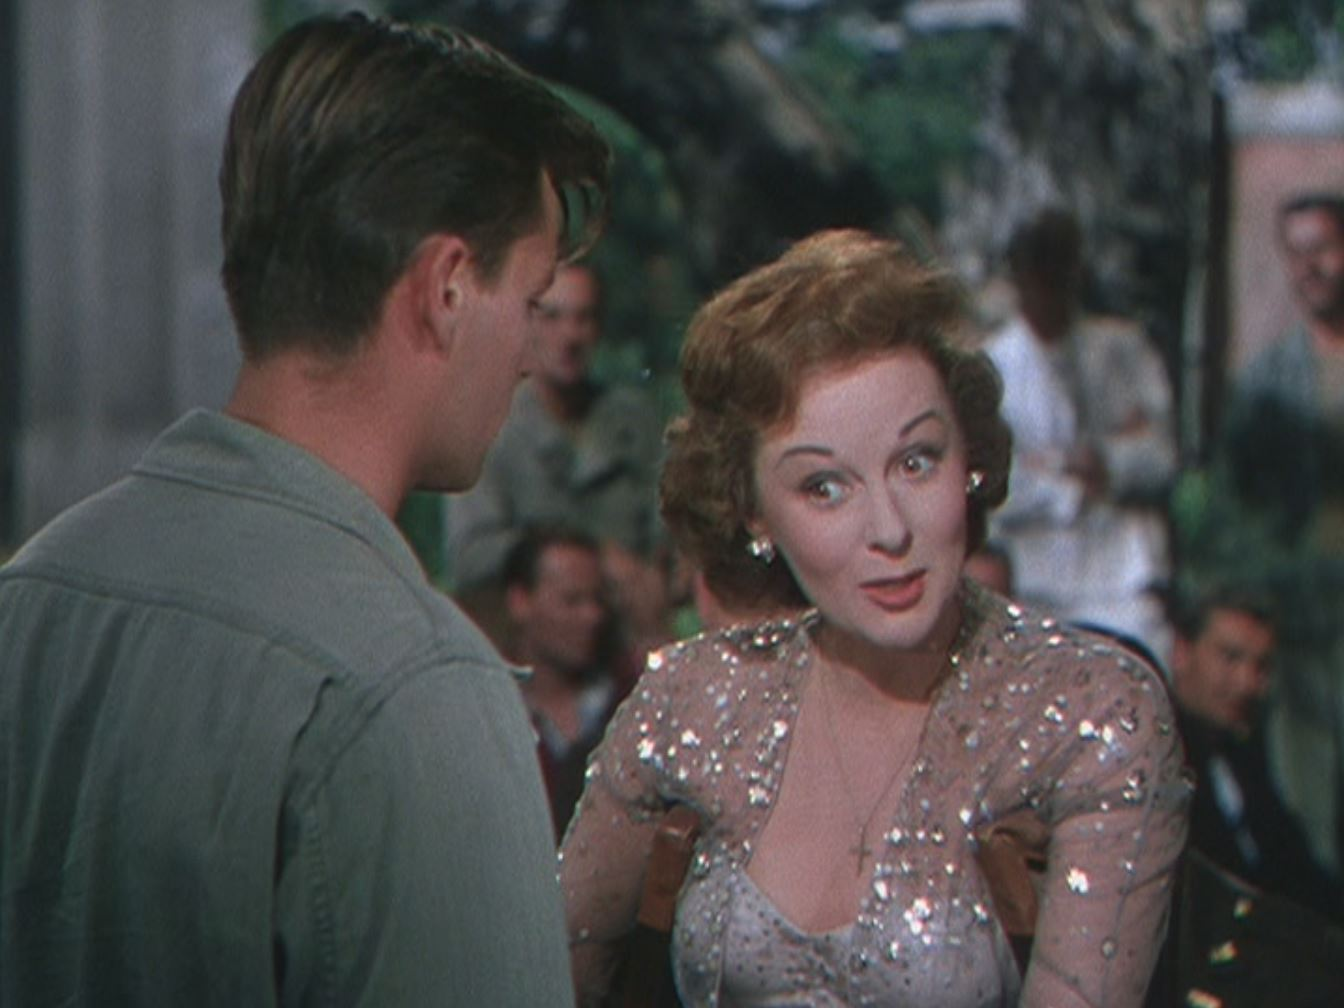 Susan Hayward as Jane Froman, the valiant, full-throated gimp; at song's end Robert Wagner falls into her crutches.